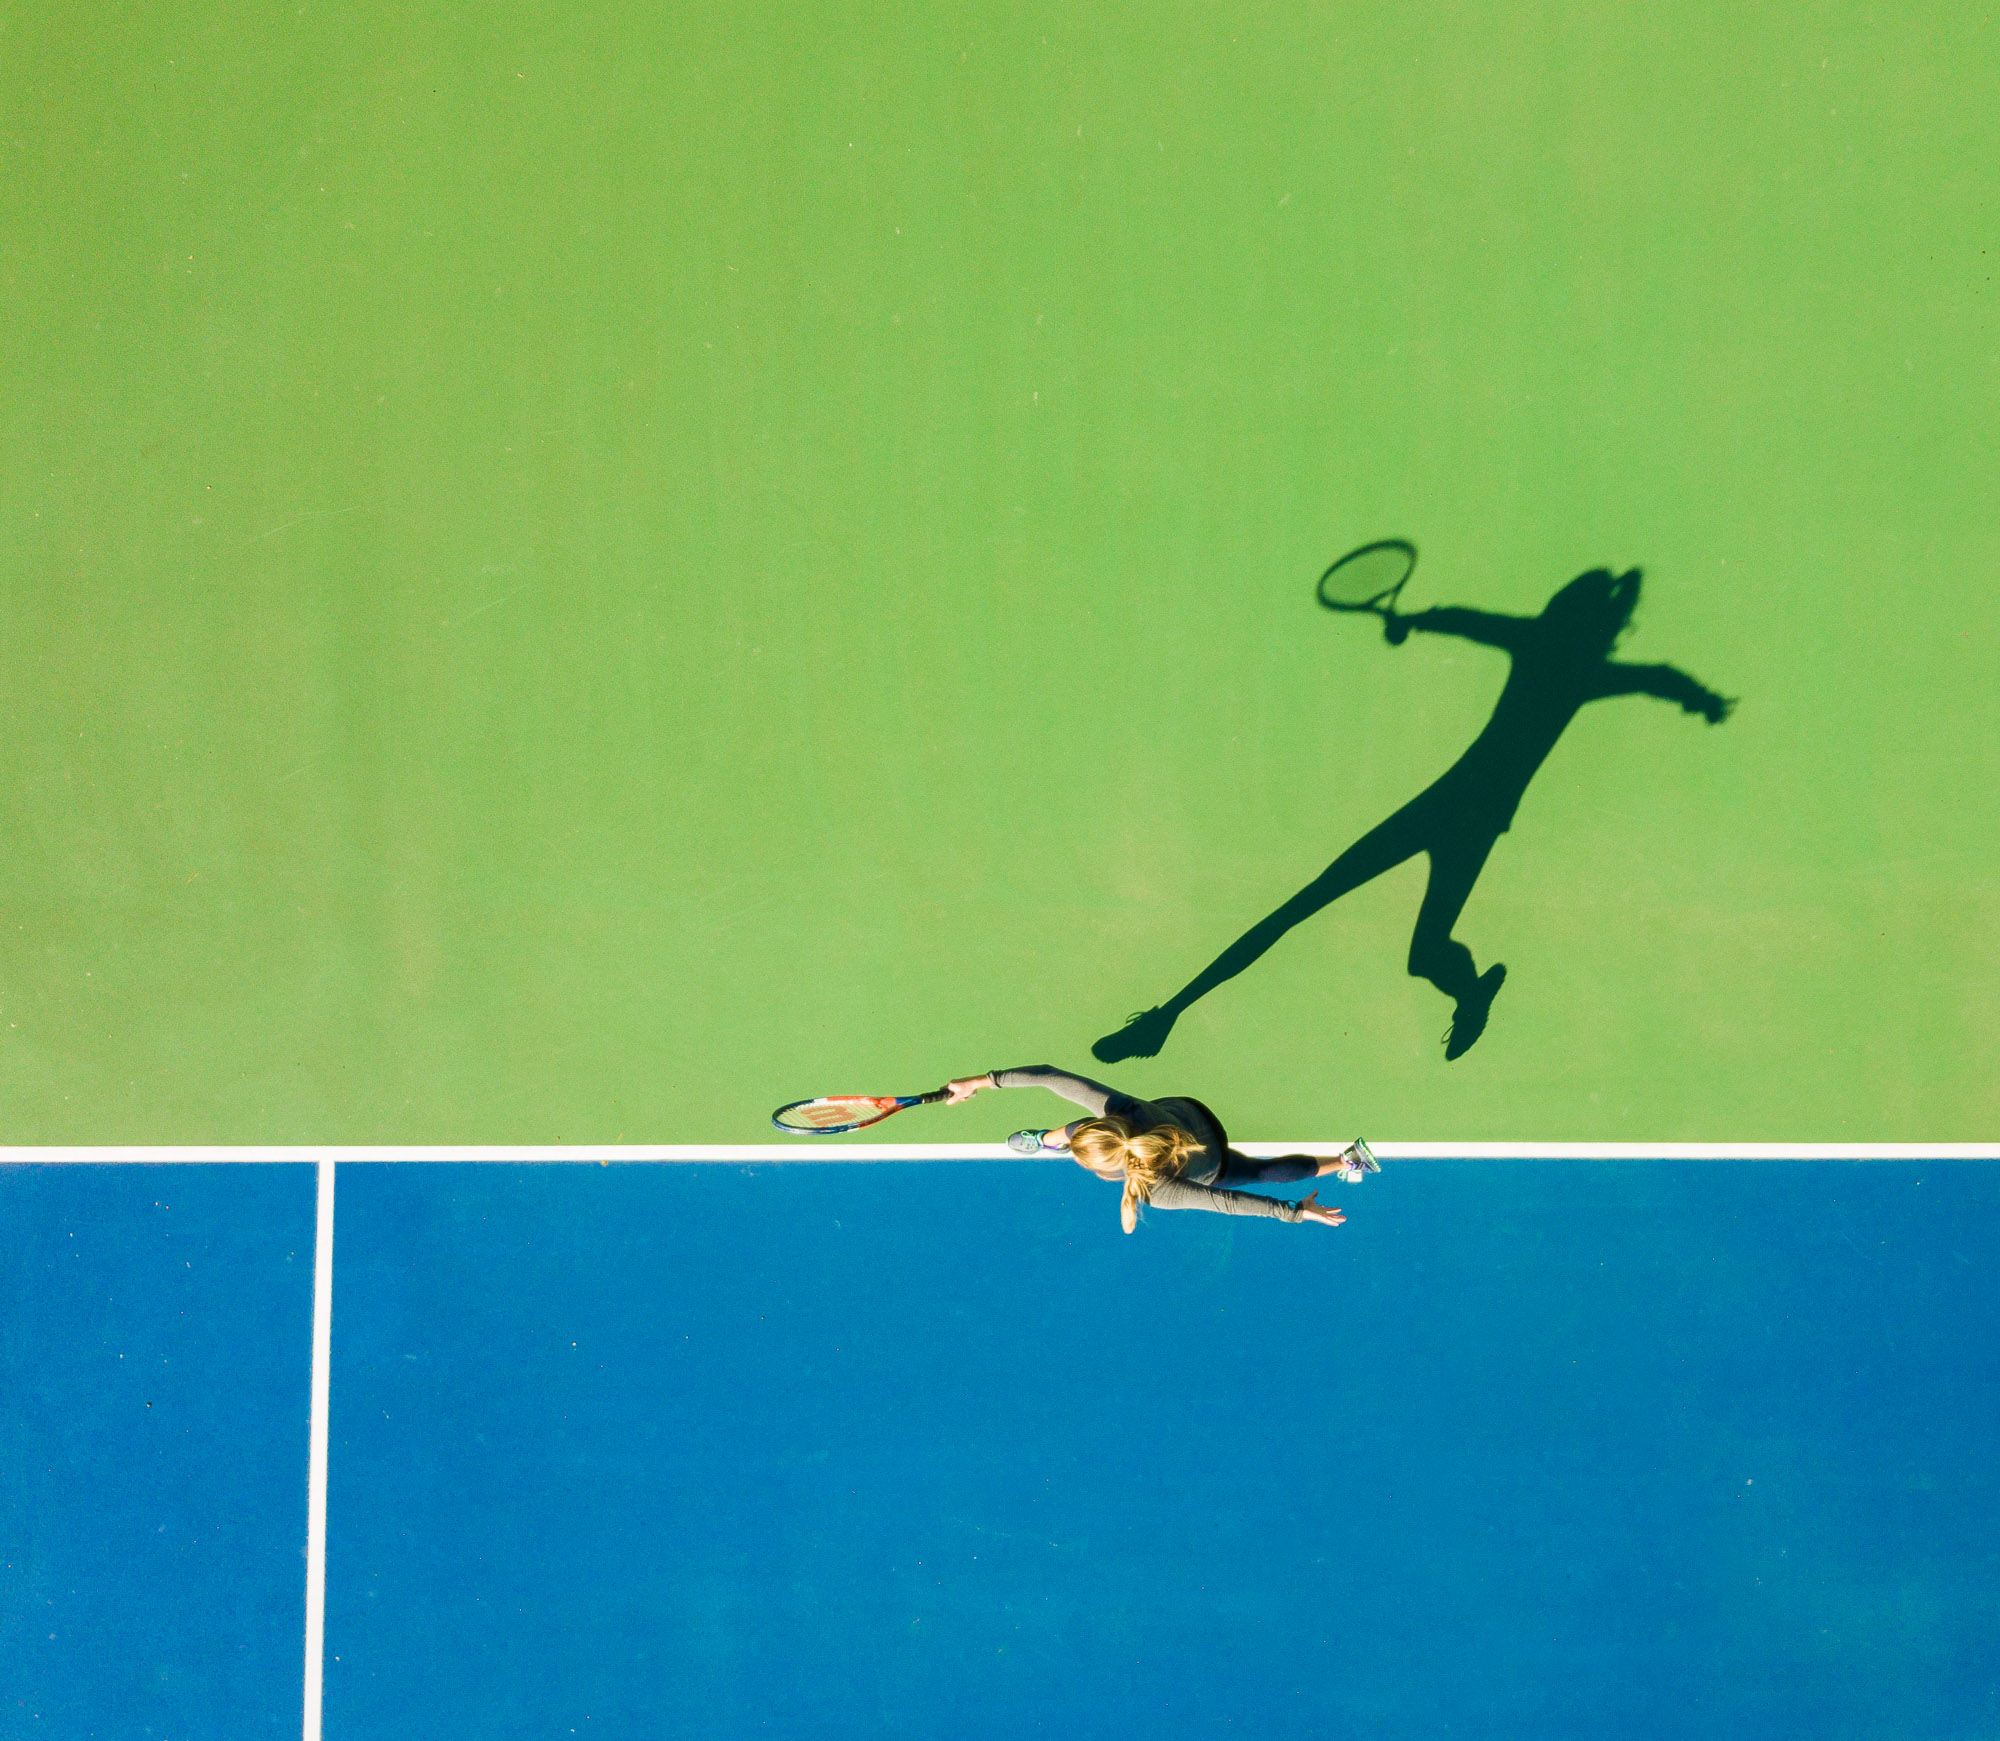 Aerial drone photo of a girl playing tennis casting a shadow on the court.